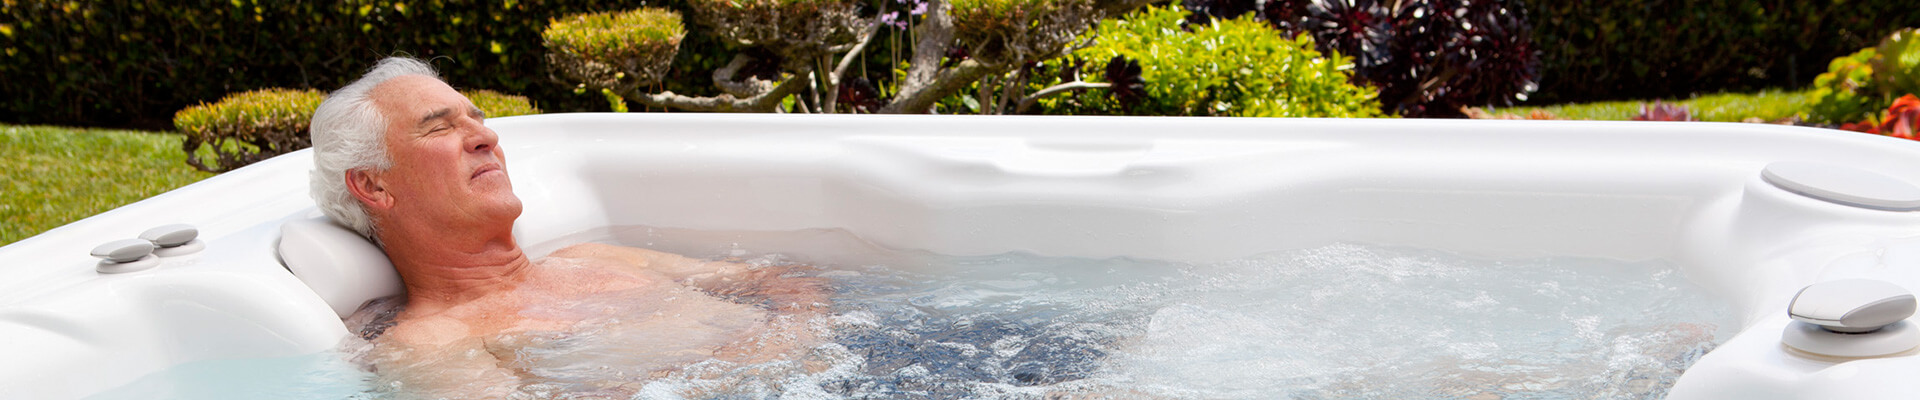 Make Your Hot Tub a Fitness Center for Health, Spa Dealer Clive